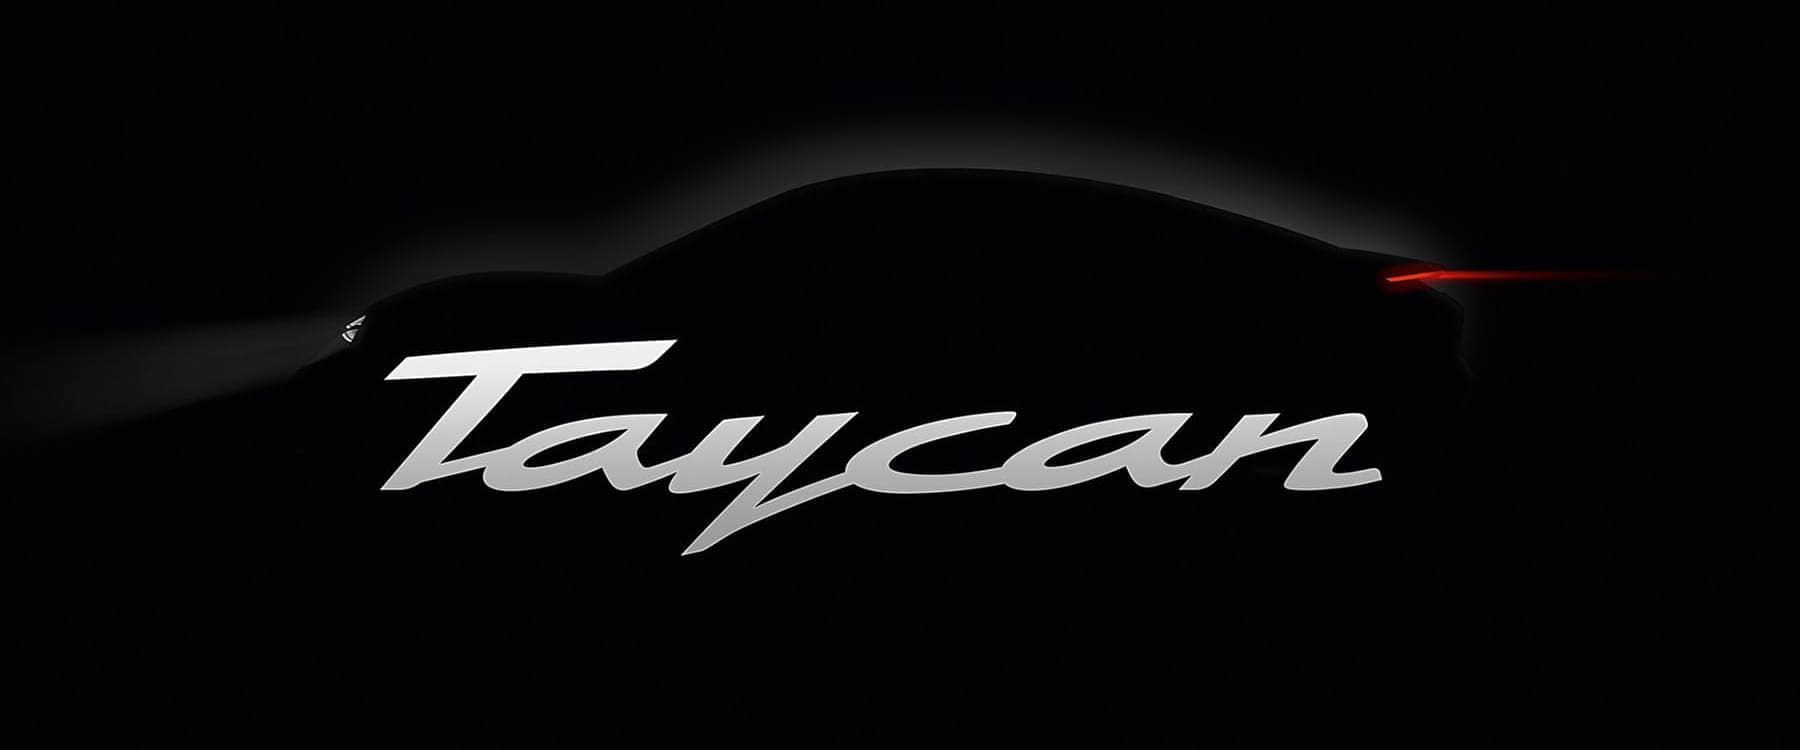 Porsche Taycan Deposit Option Program